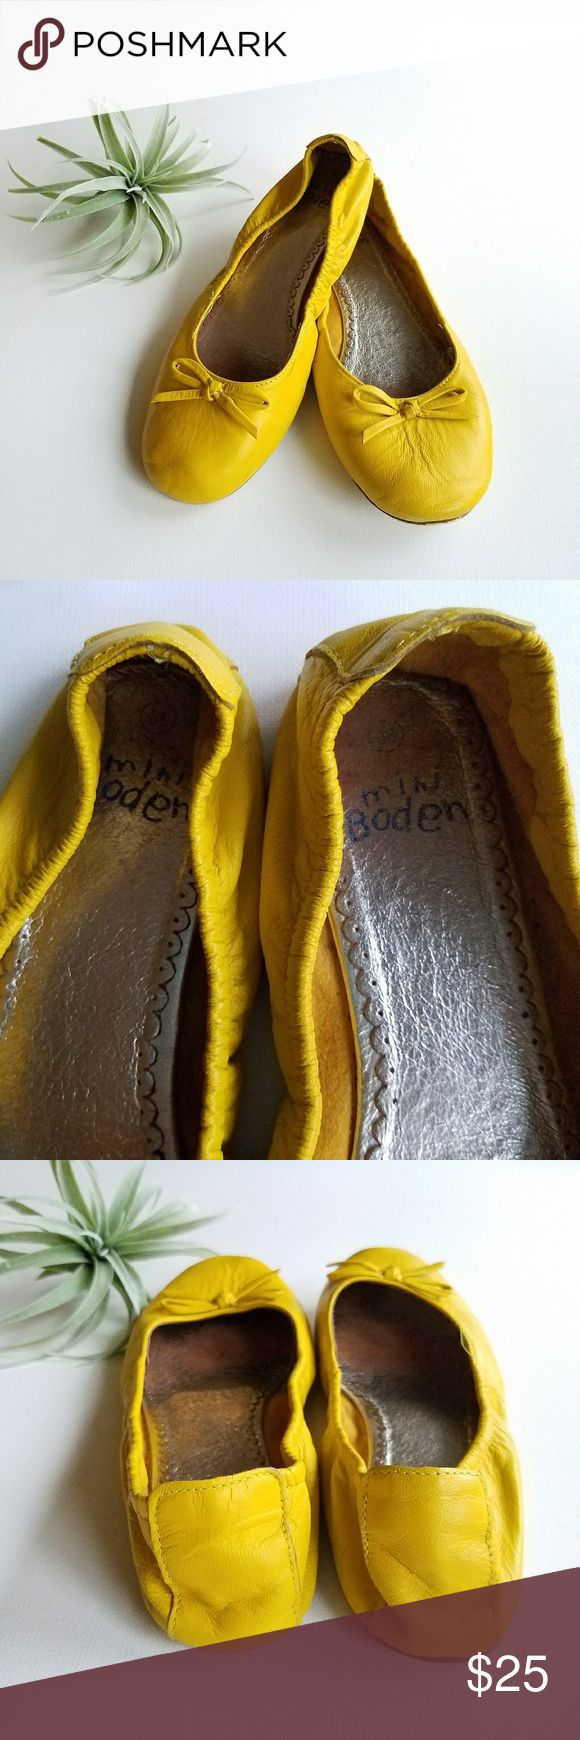 MINI BODEN Leather Flats Size 38/6 Cute sunny yellow leather flats from MINI BIDEN. Children's Size 38 (US 6). FUN. Some signs of wear to inside and soles, leather is in great condition.  Smoke free pet free home. Check out my other listings to bundle and save! Mini Boden Shoes